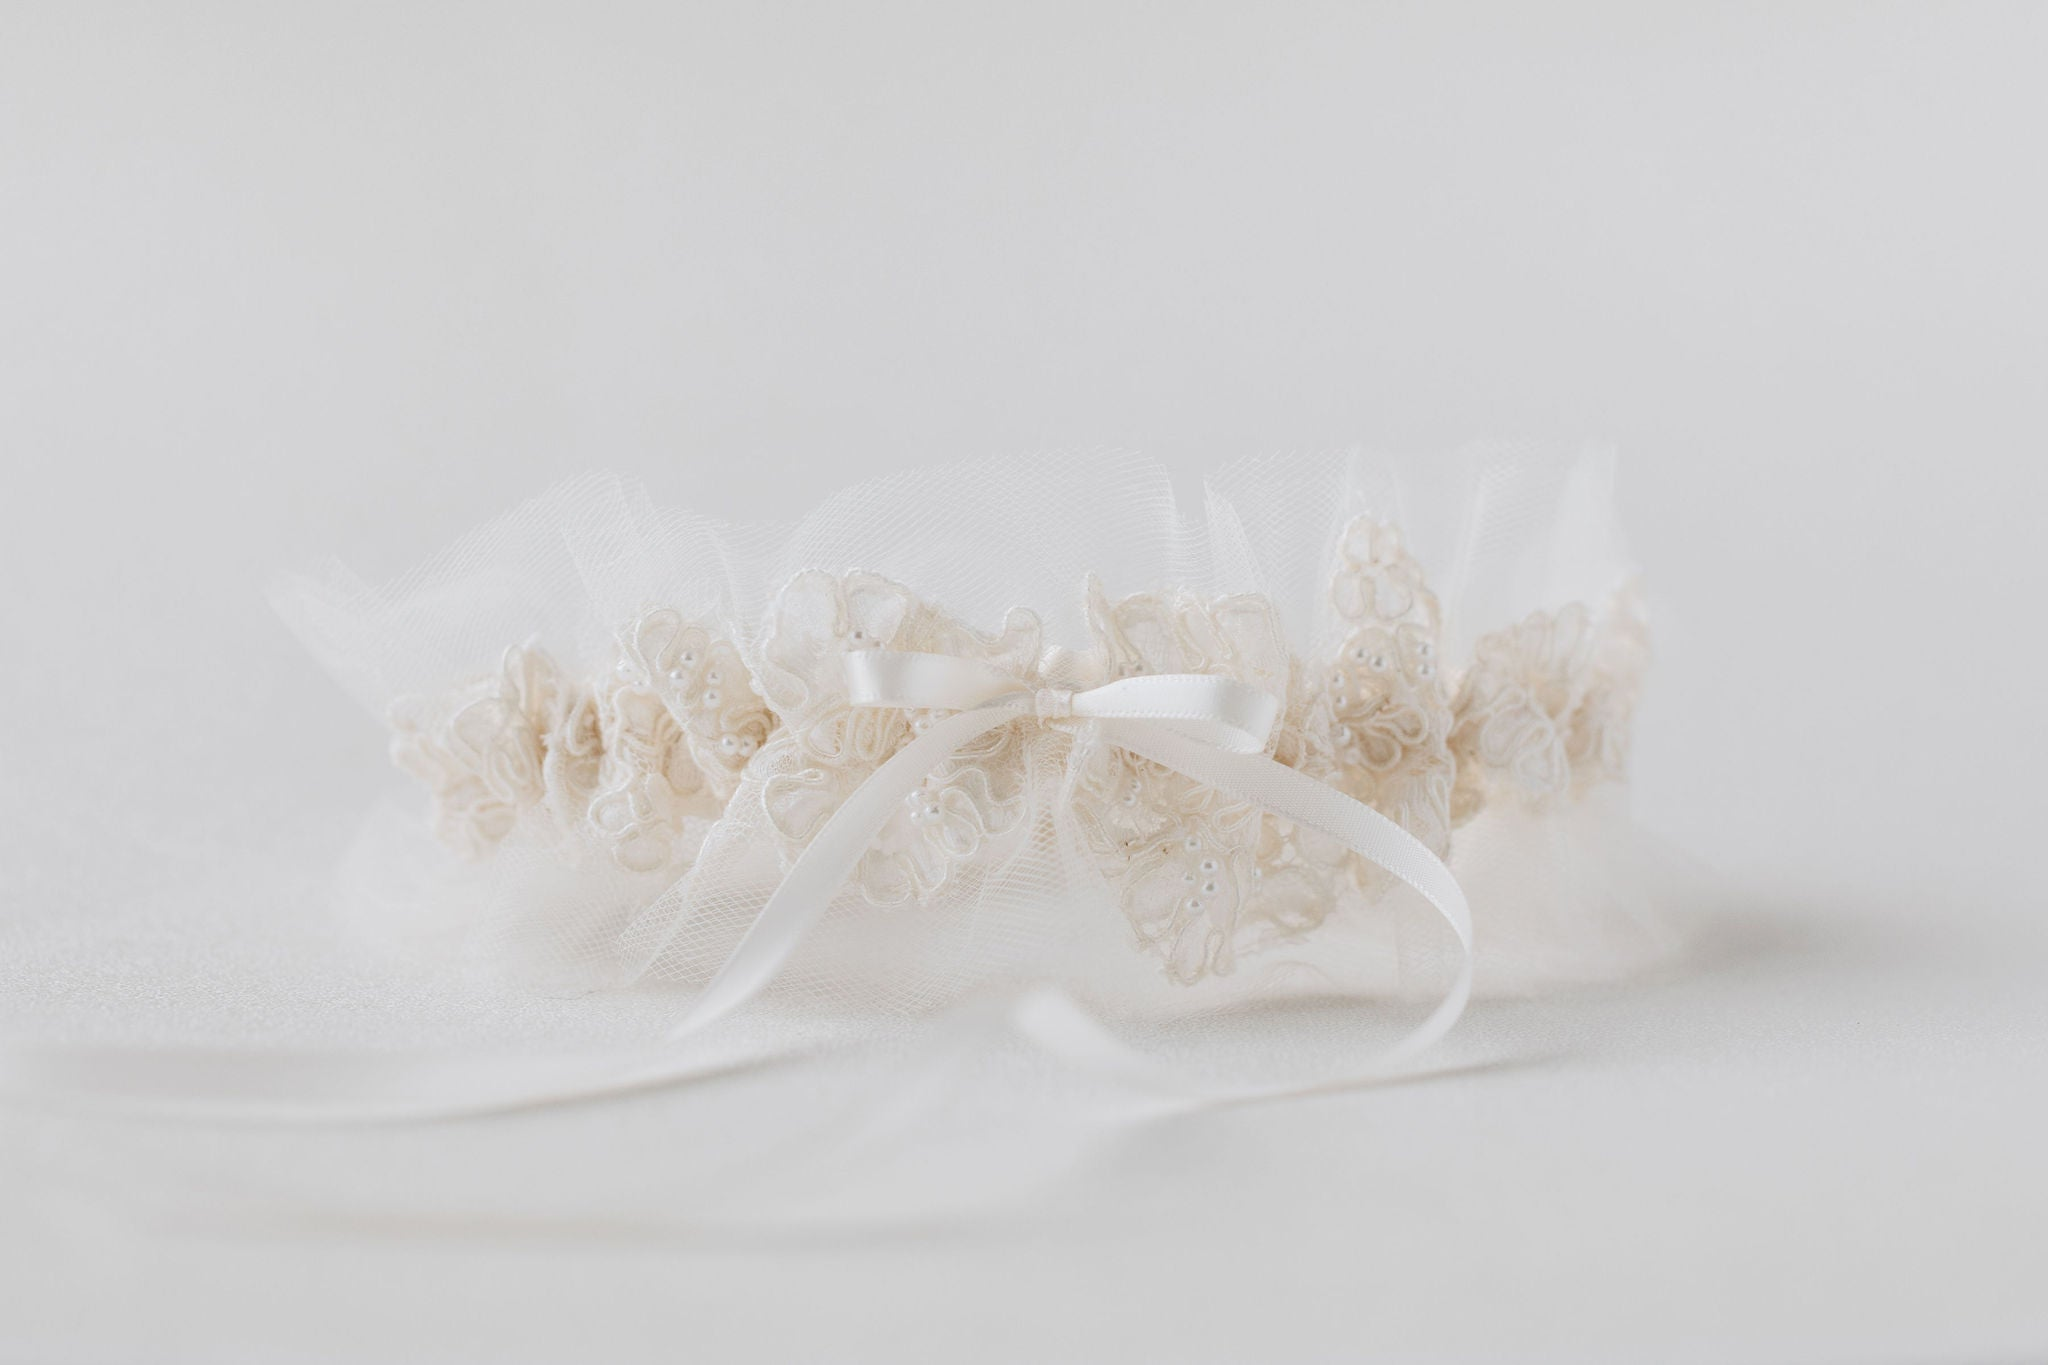 what to do with mother's wedding dress - wedding garters w pearls & lace handmade from the dress sleeves by expert bridal heirloom designer, The Garter Girl